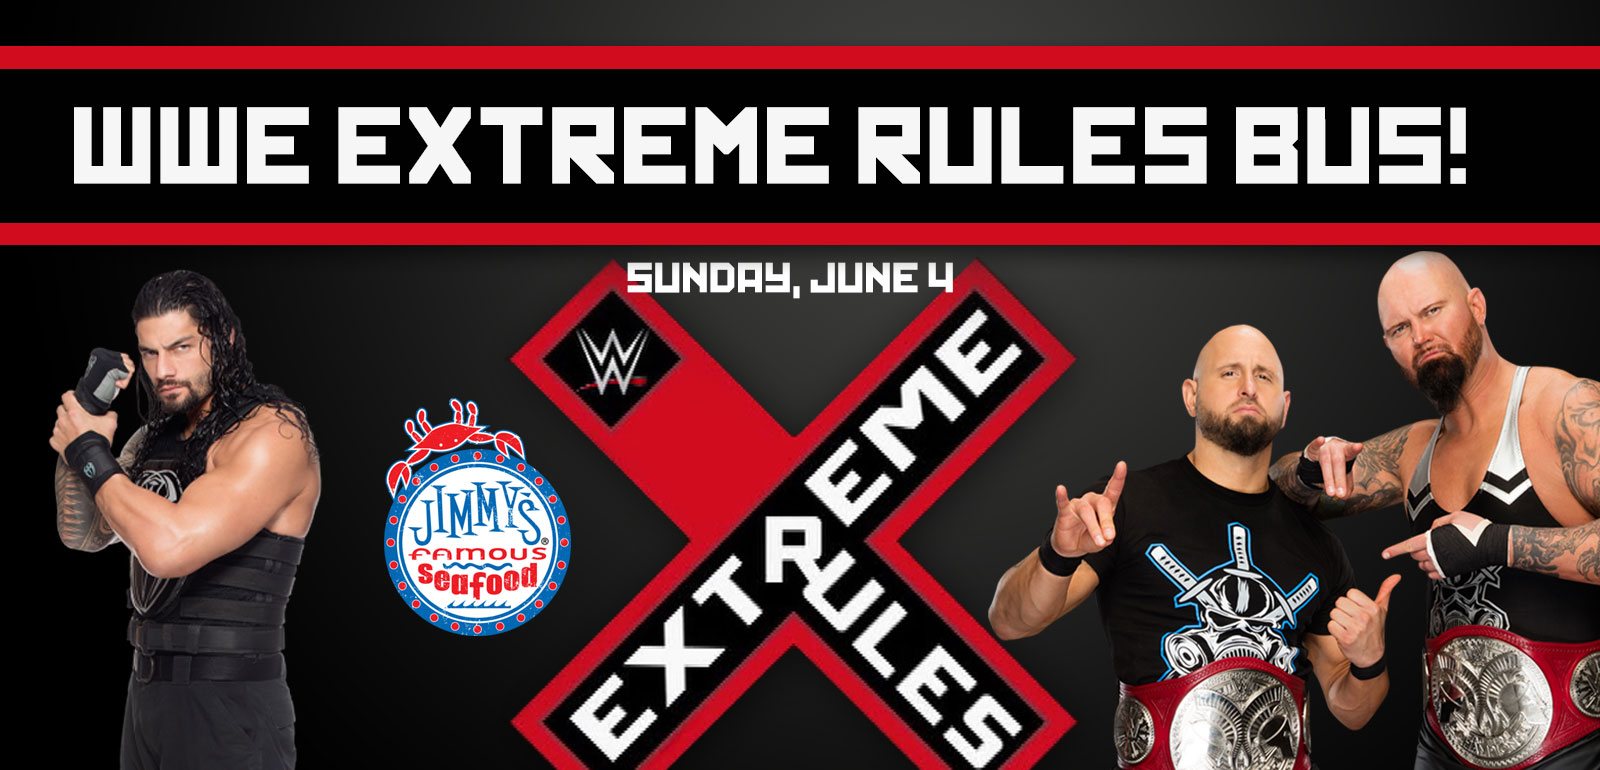 Wwe Extreme Rules Bus Sunday June 4 Bus Will Depart 630 And Return Immediately Following The Conclusion Of The Event 170 Per Person Includes